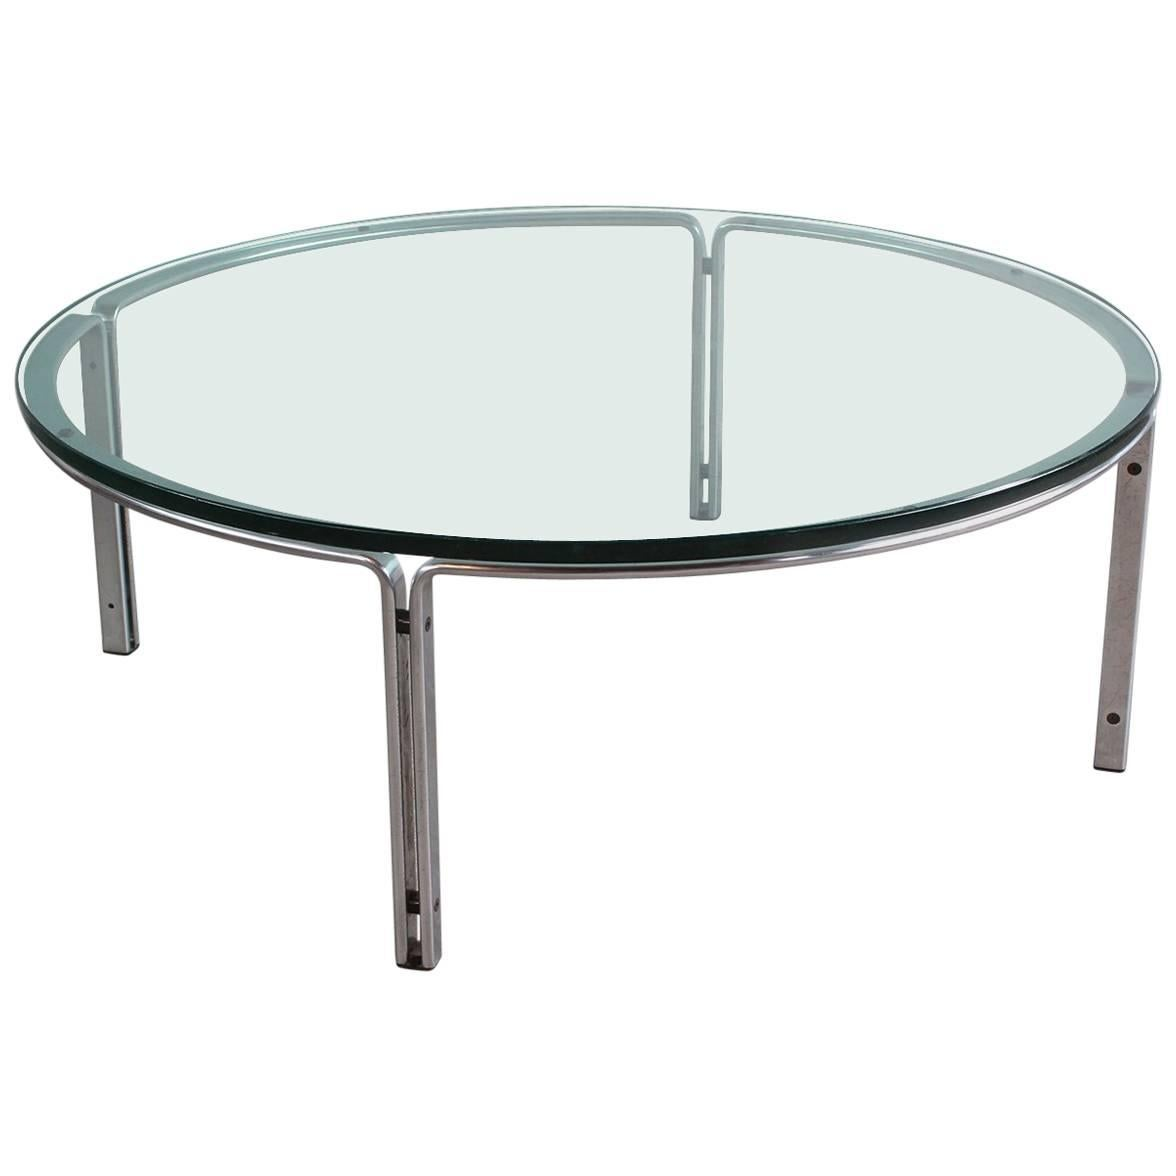 Round Metal And Steel Coffee Table With Glass Top